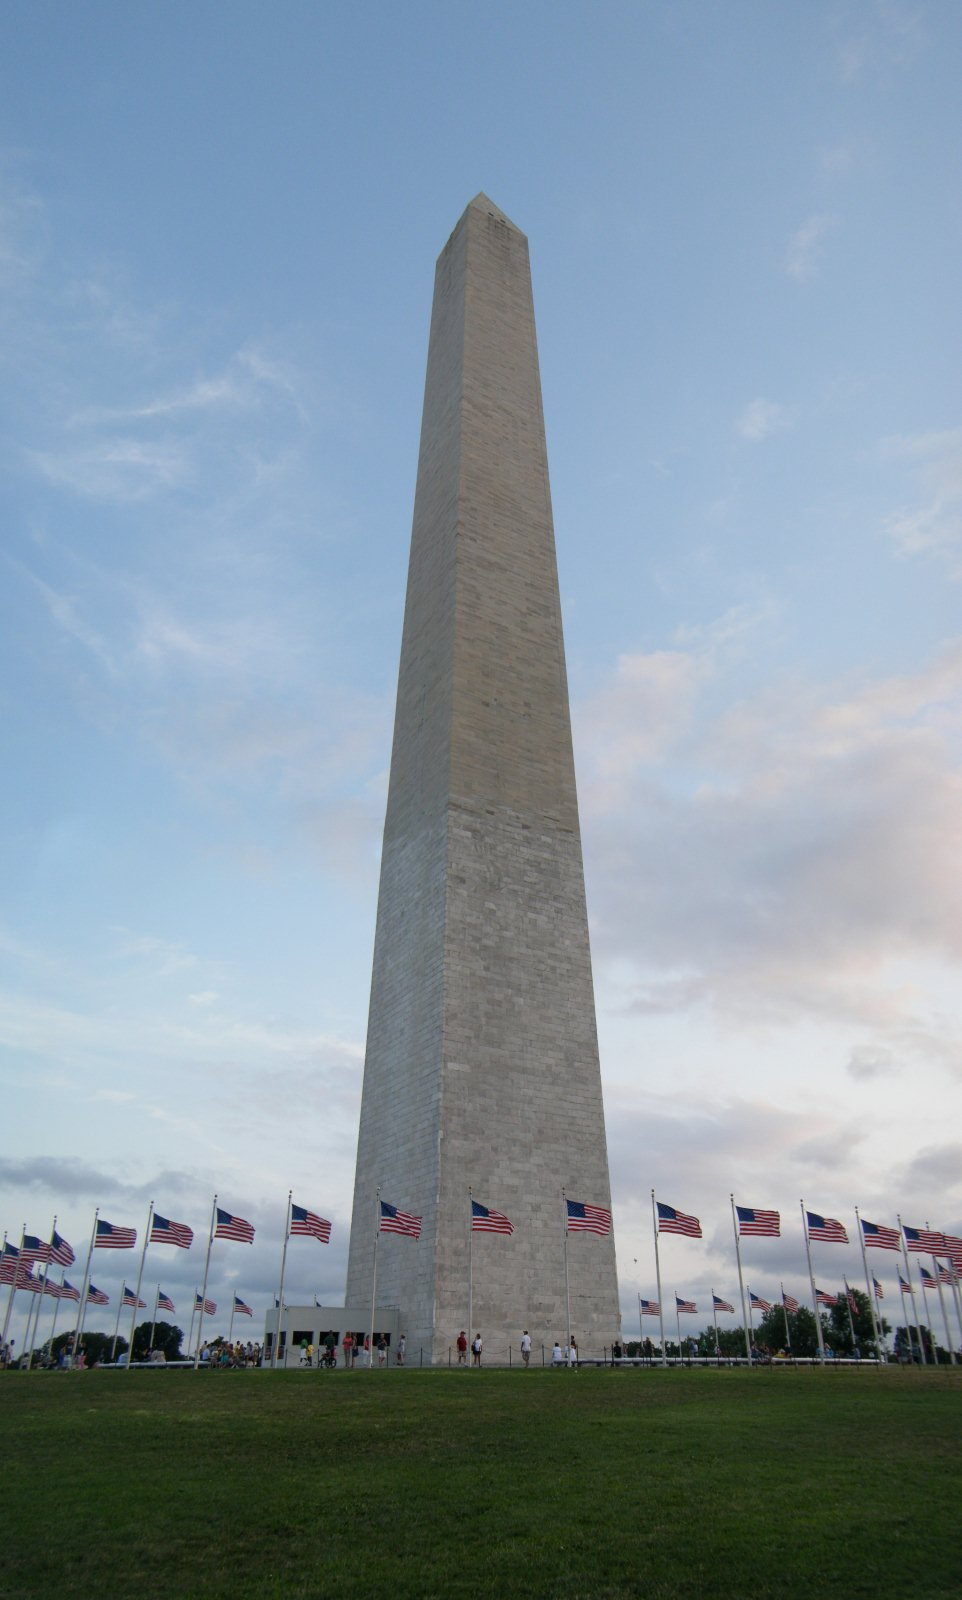 In A Strange Country: Washington Monument